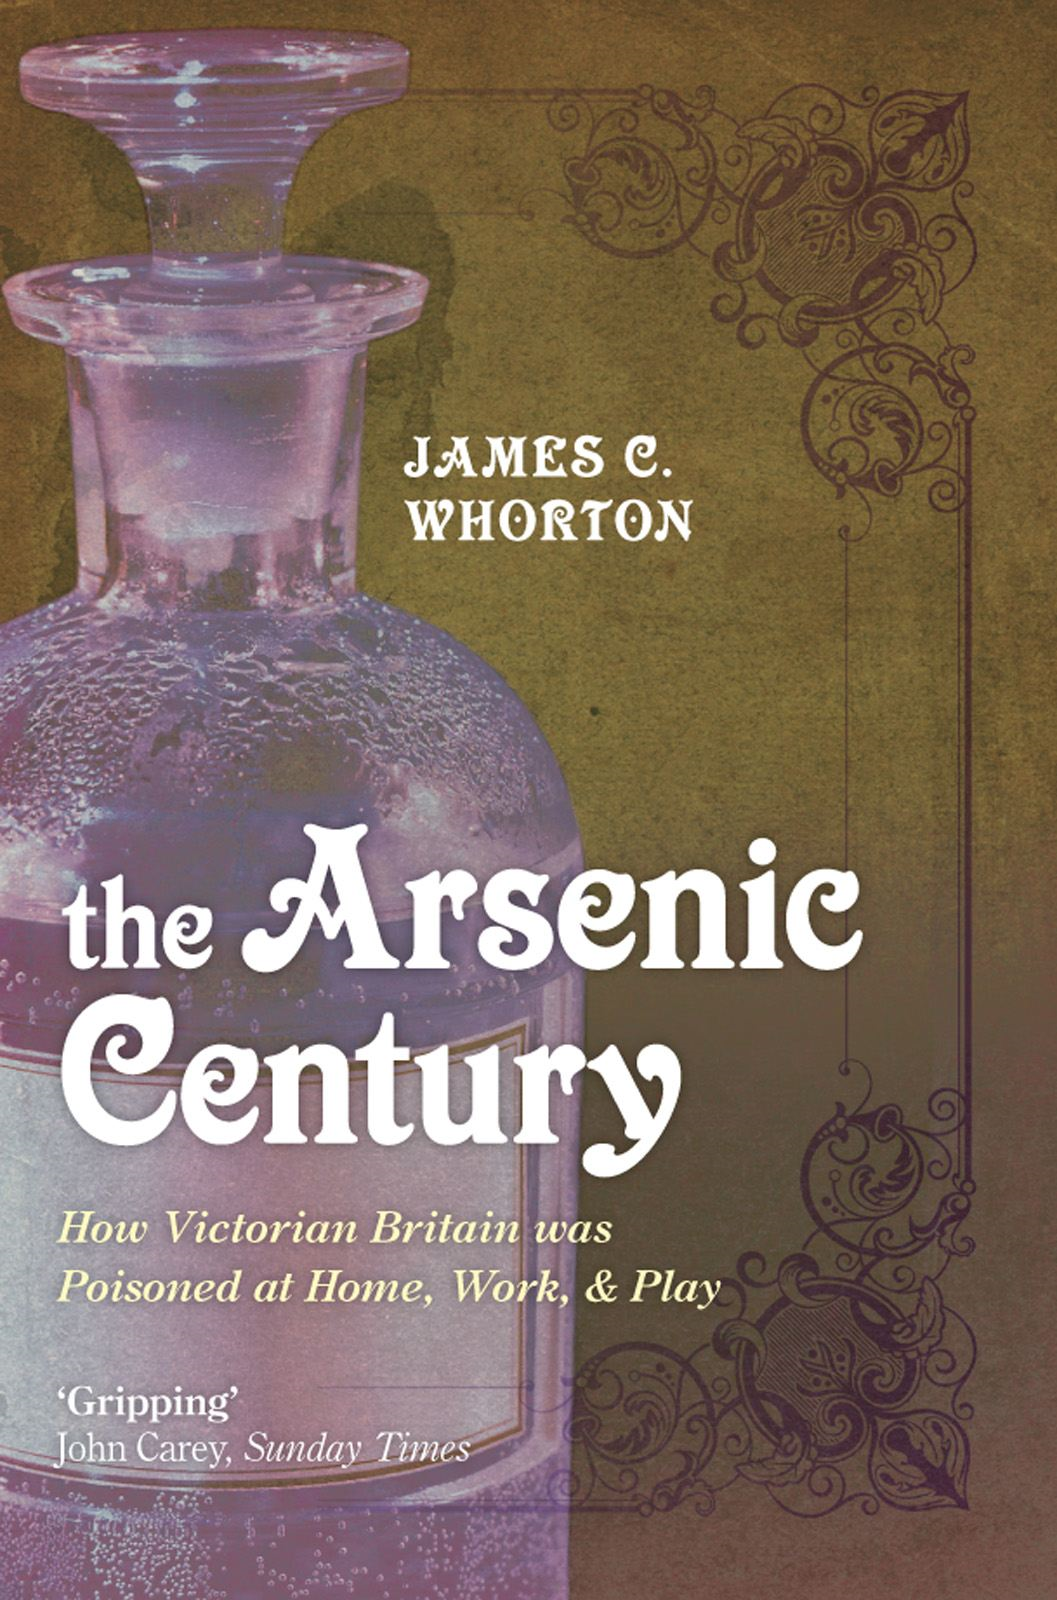 The Arsenic Century:How Victorian Britain was Poisoned at Home, Work, and Play By: James C. Whorton